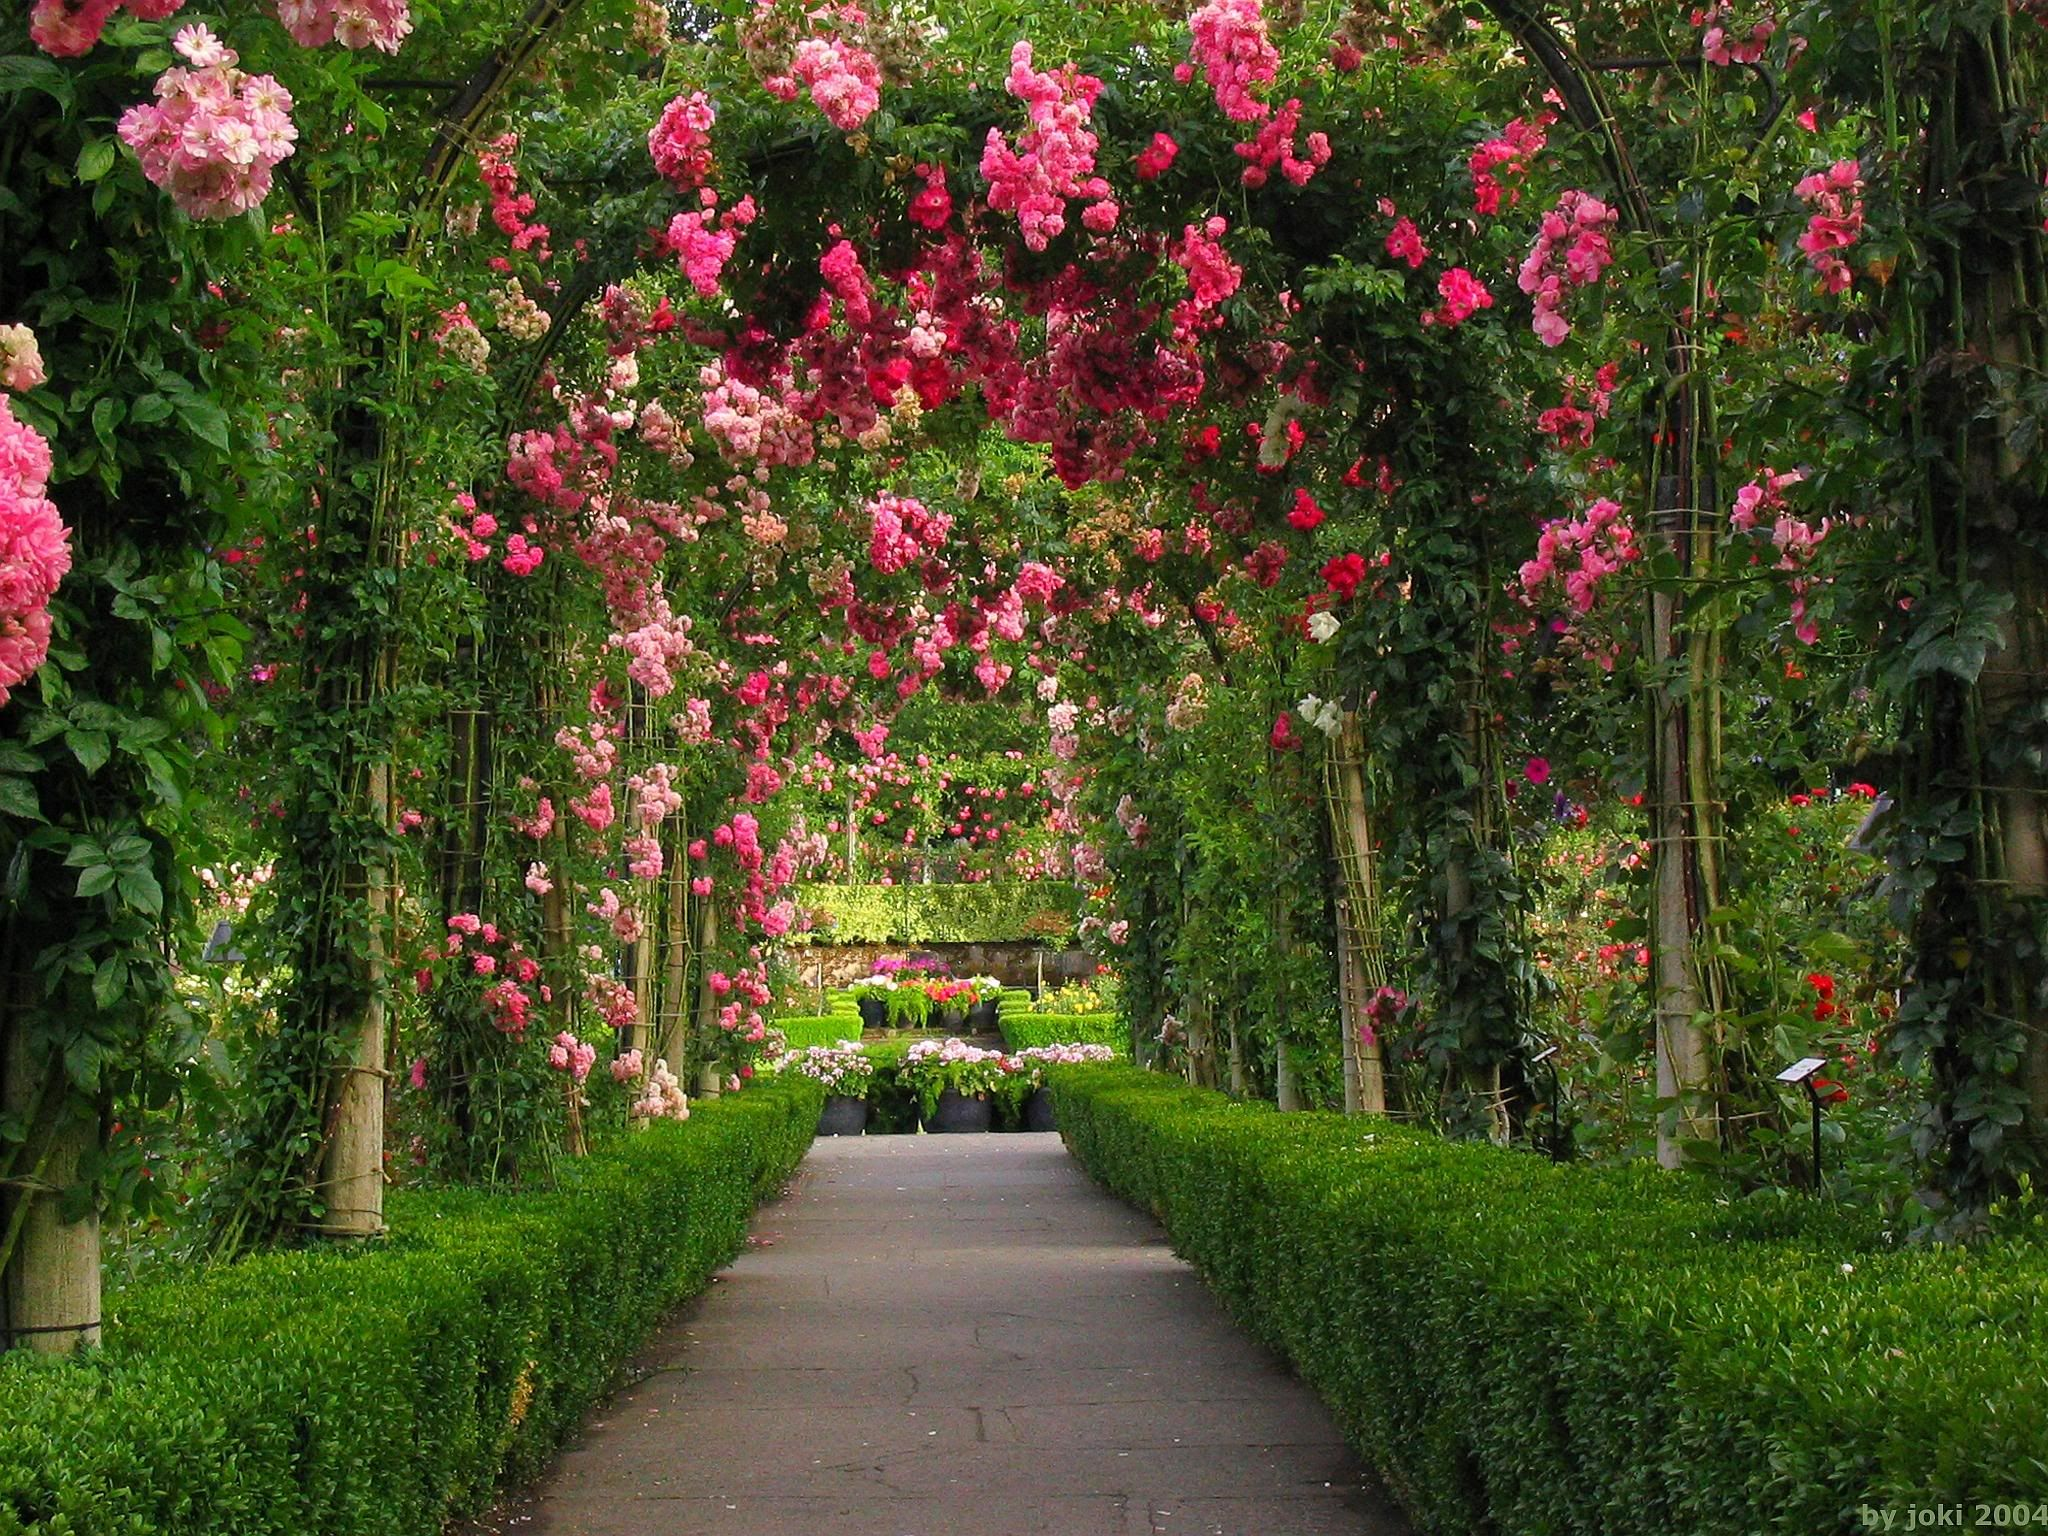 Beautiful rose garden photos